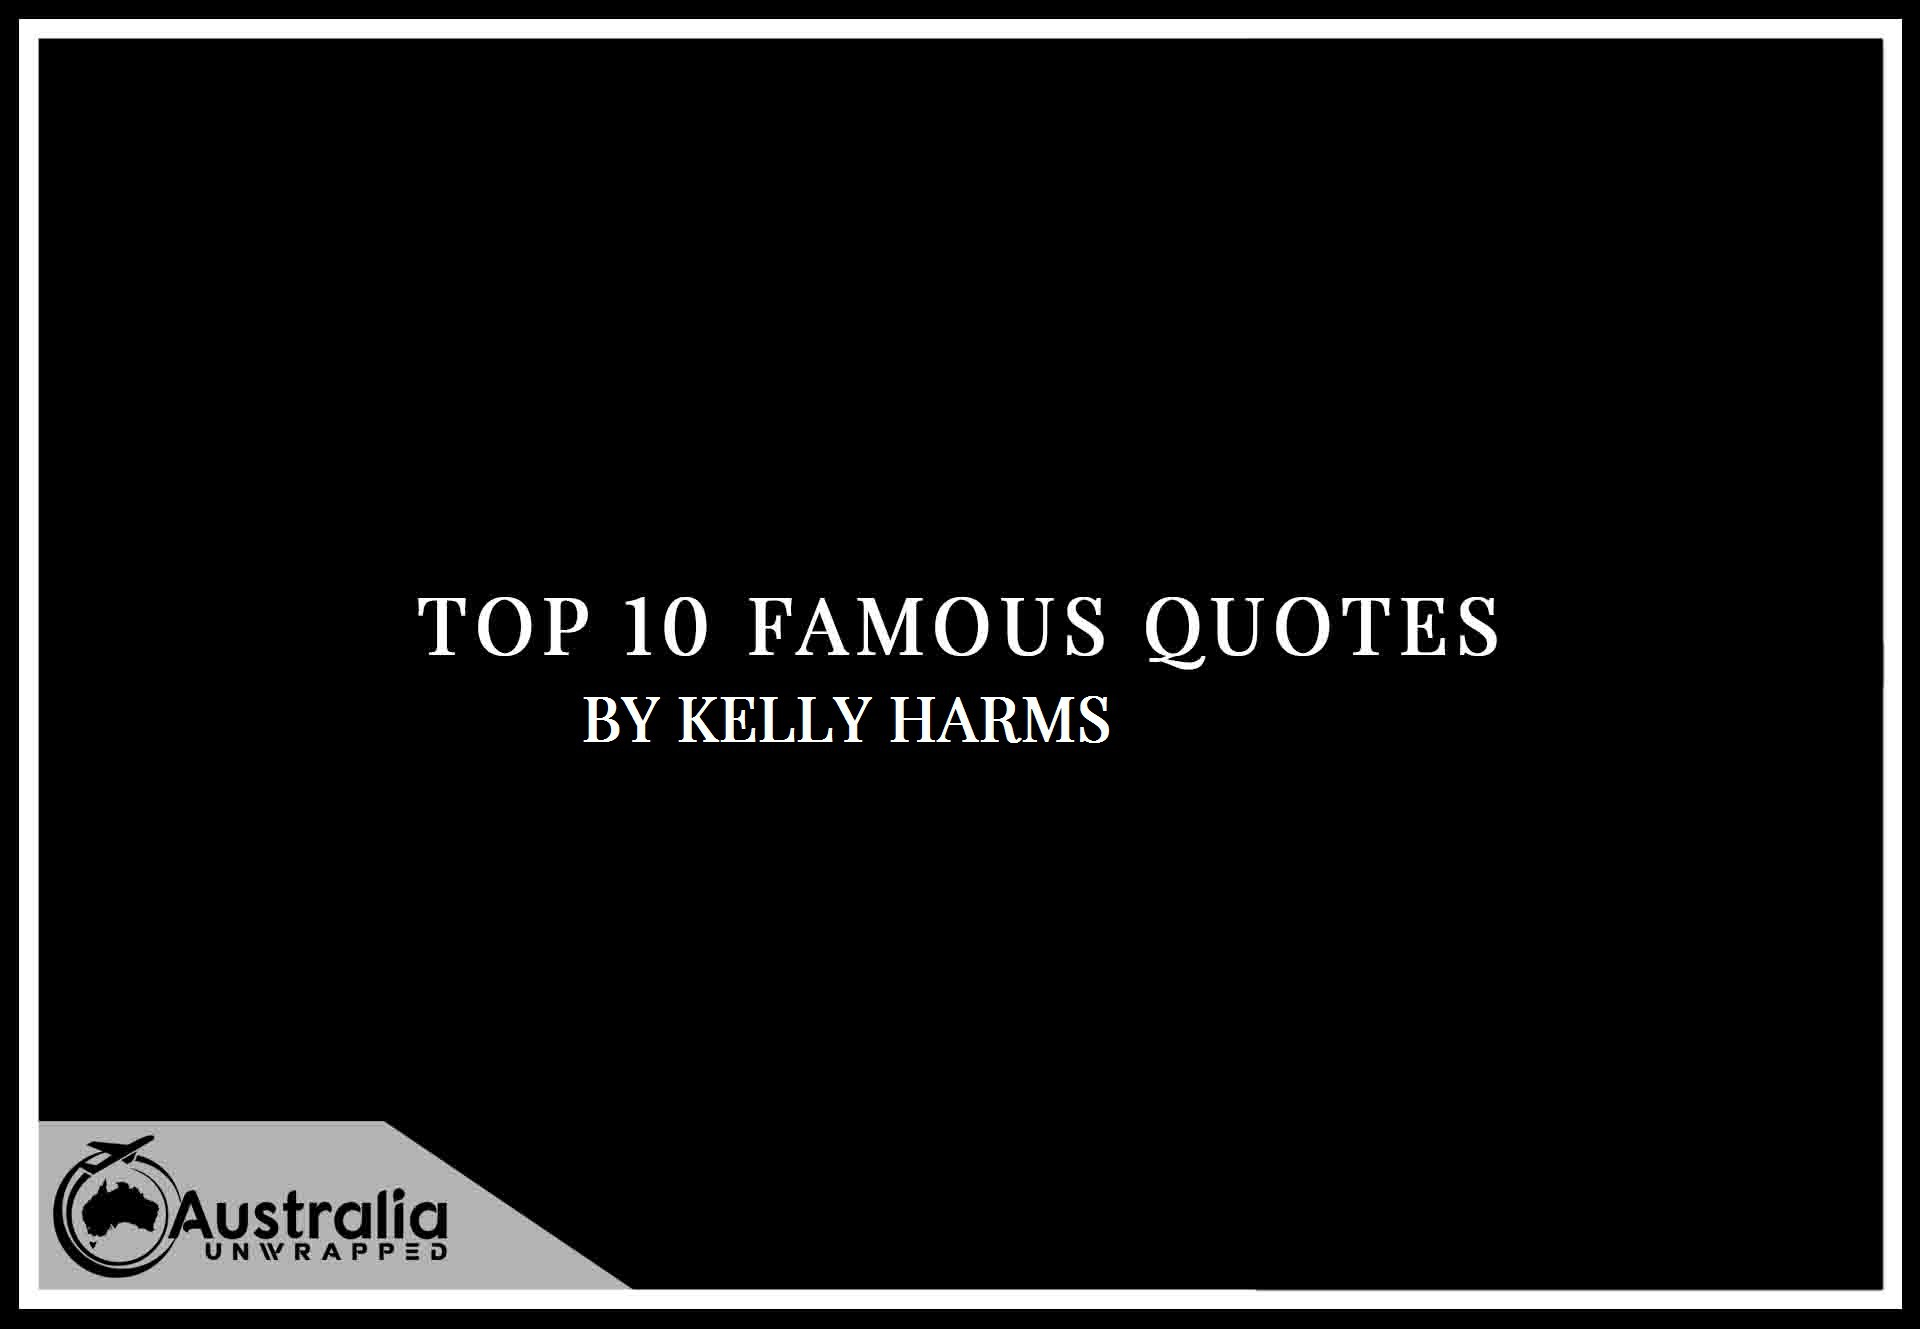 Kelly Harms's Top 10 Popular and Famous Quotes